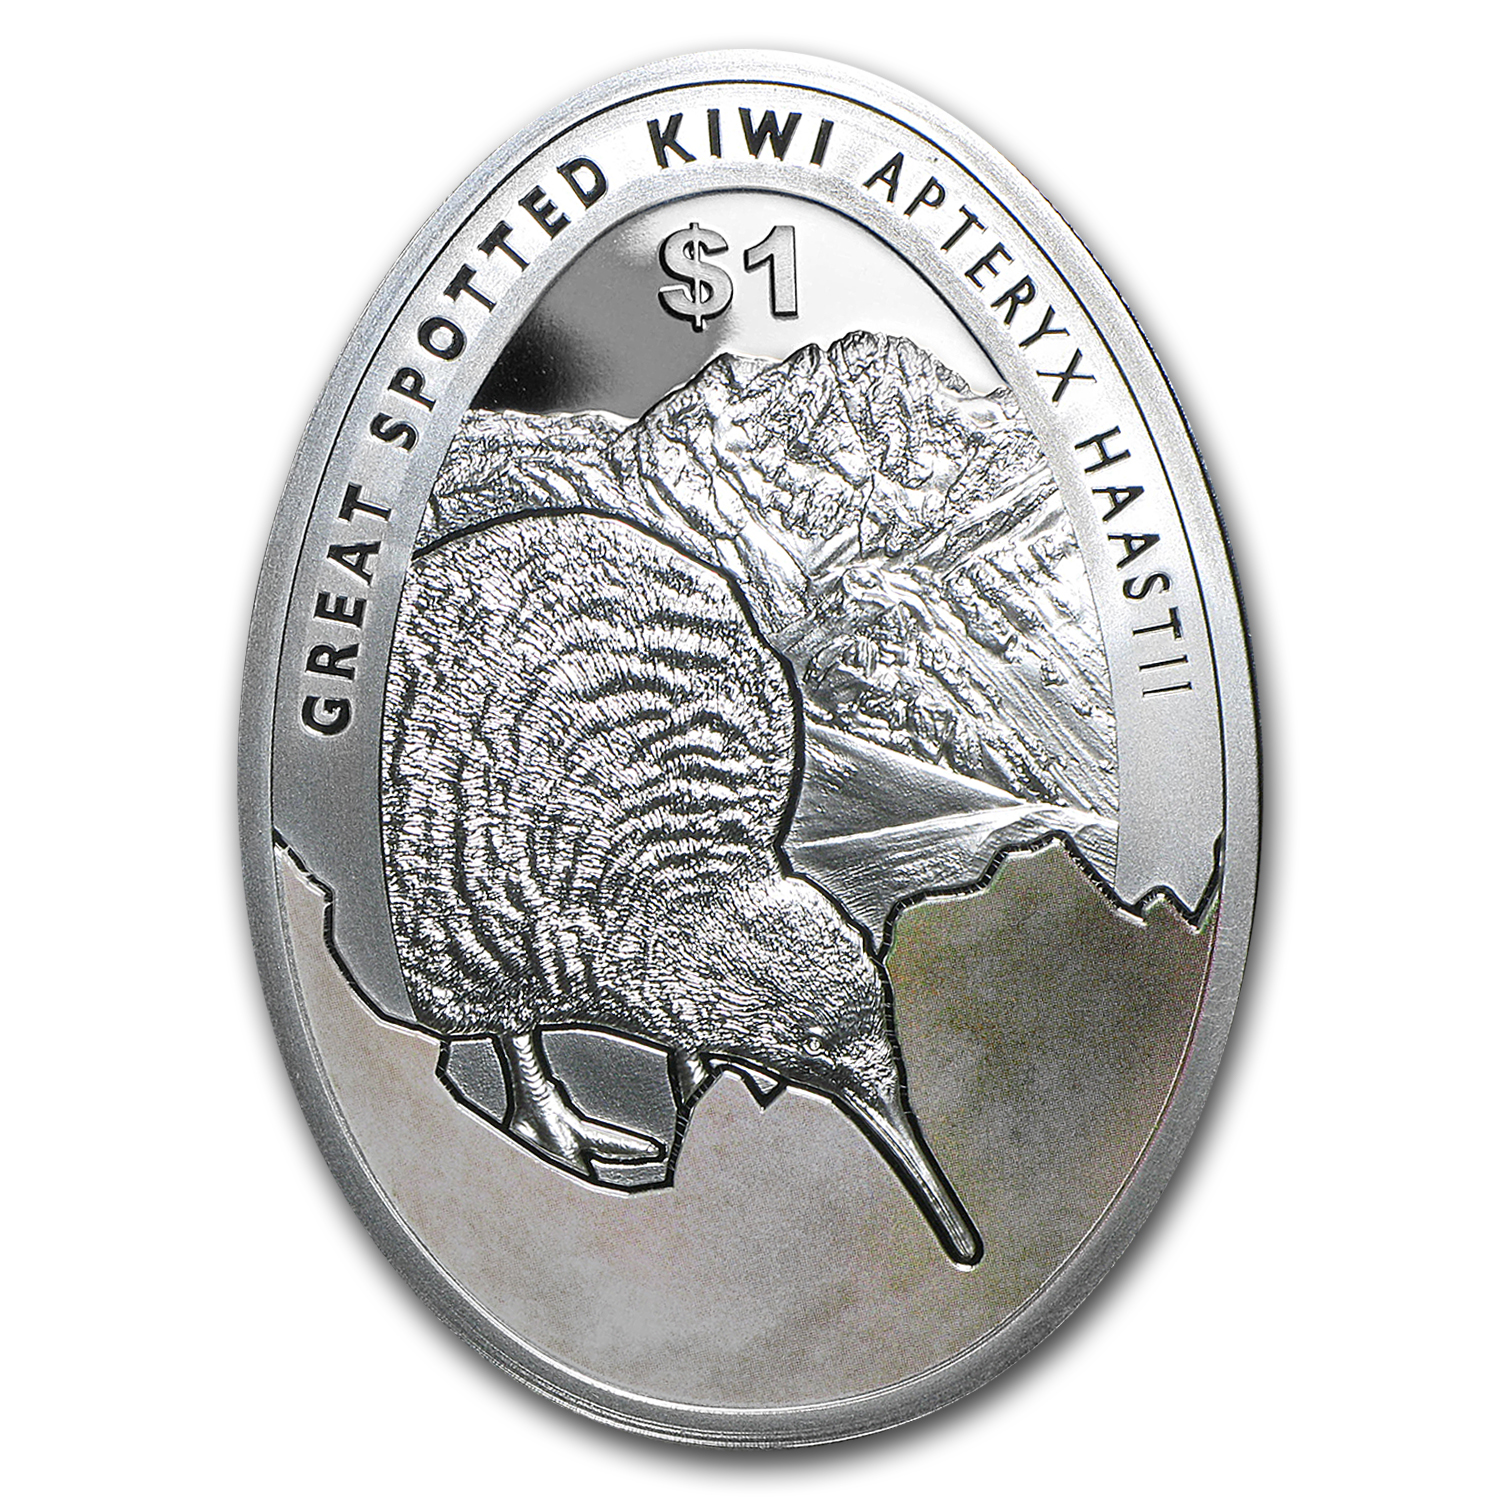 2016 New Zealand 1 oz Silver Kiwi Egg-Shaped Proof (w/Box & COA)